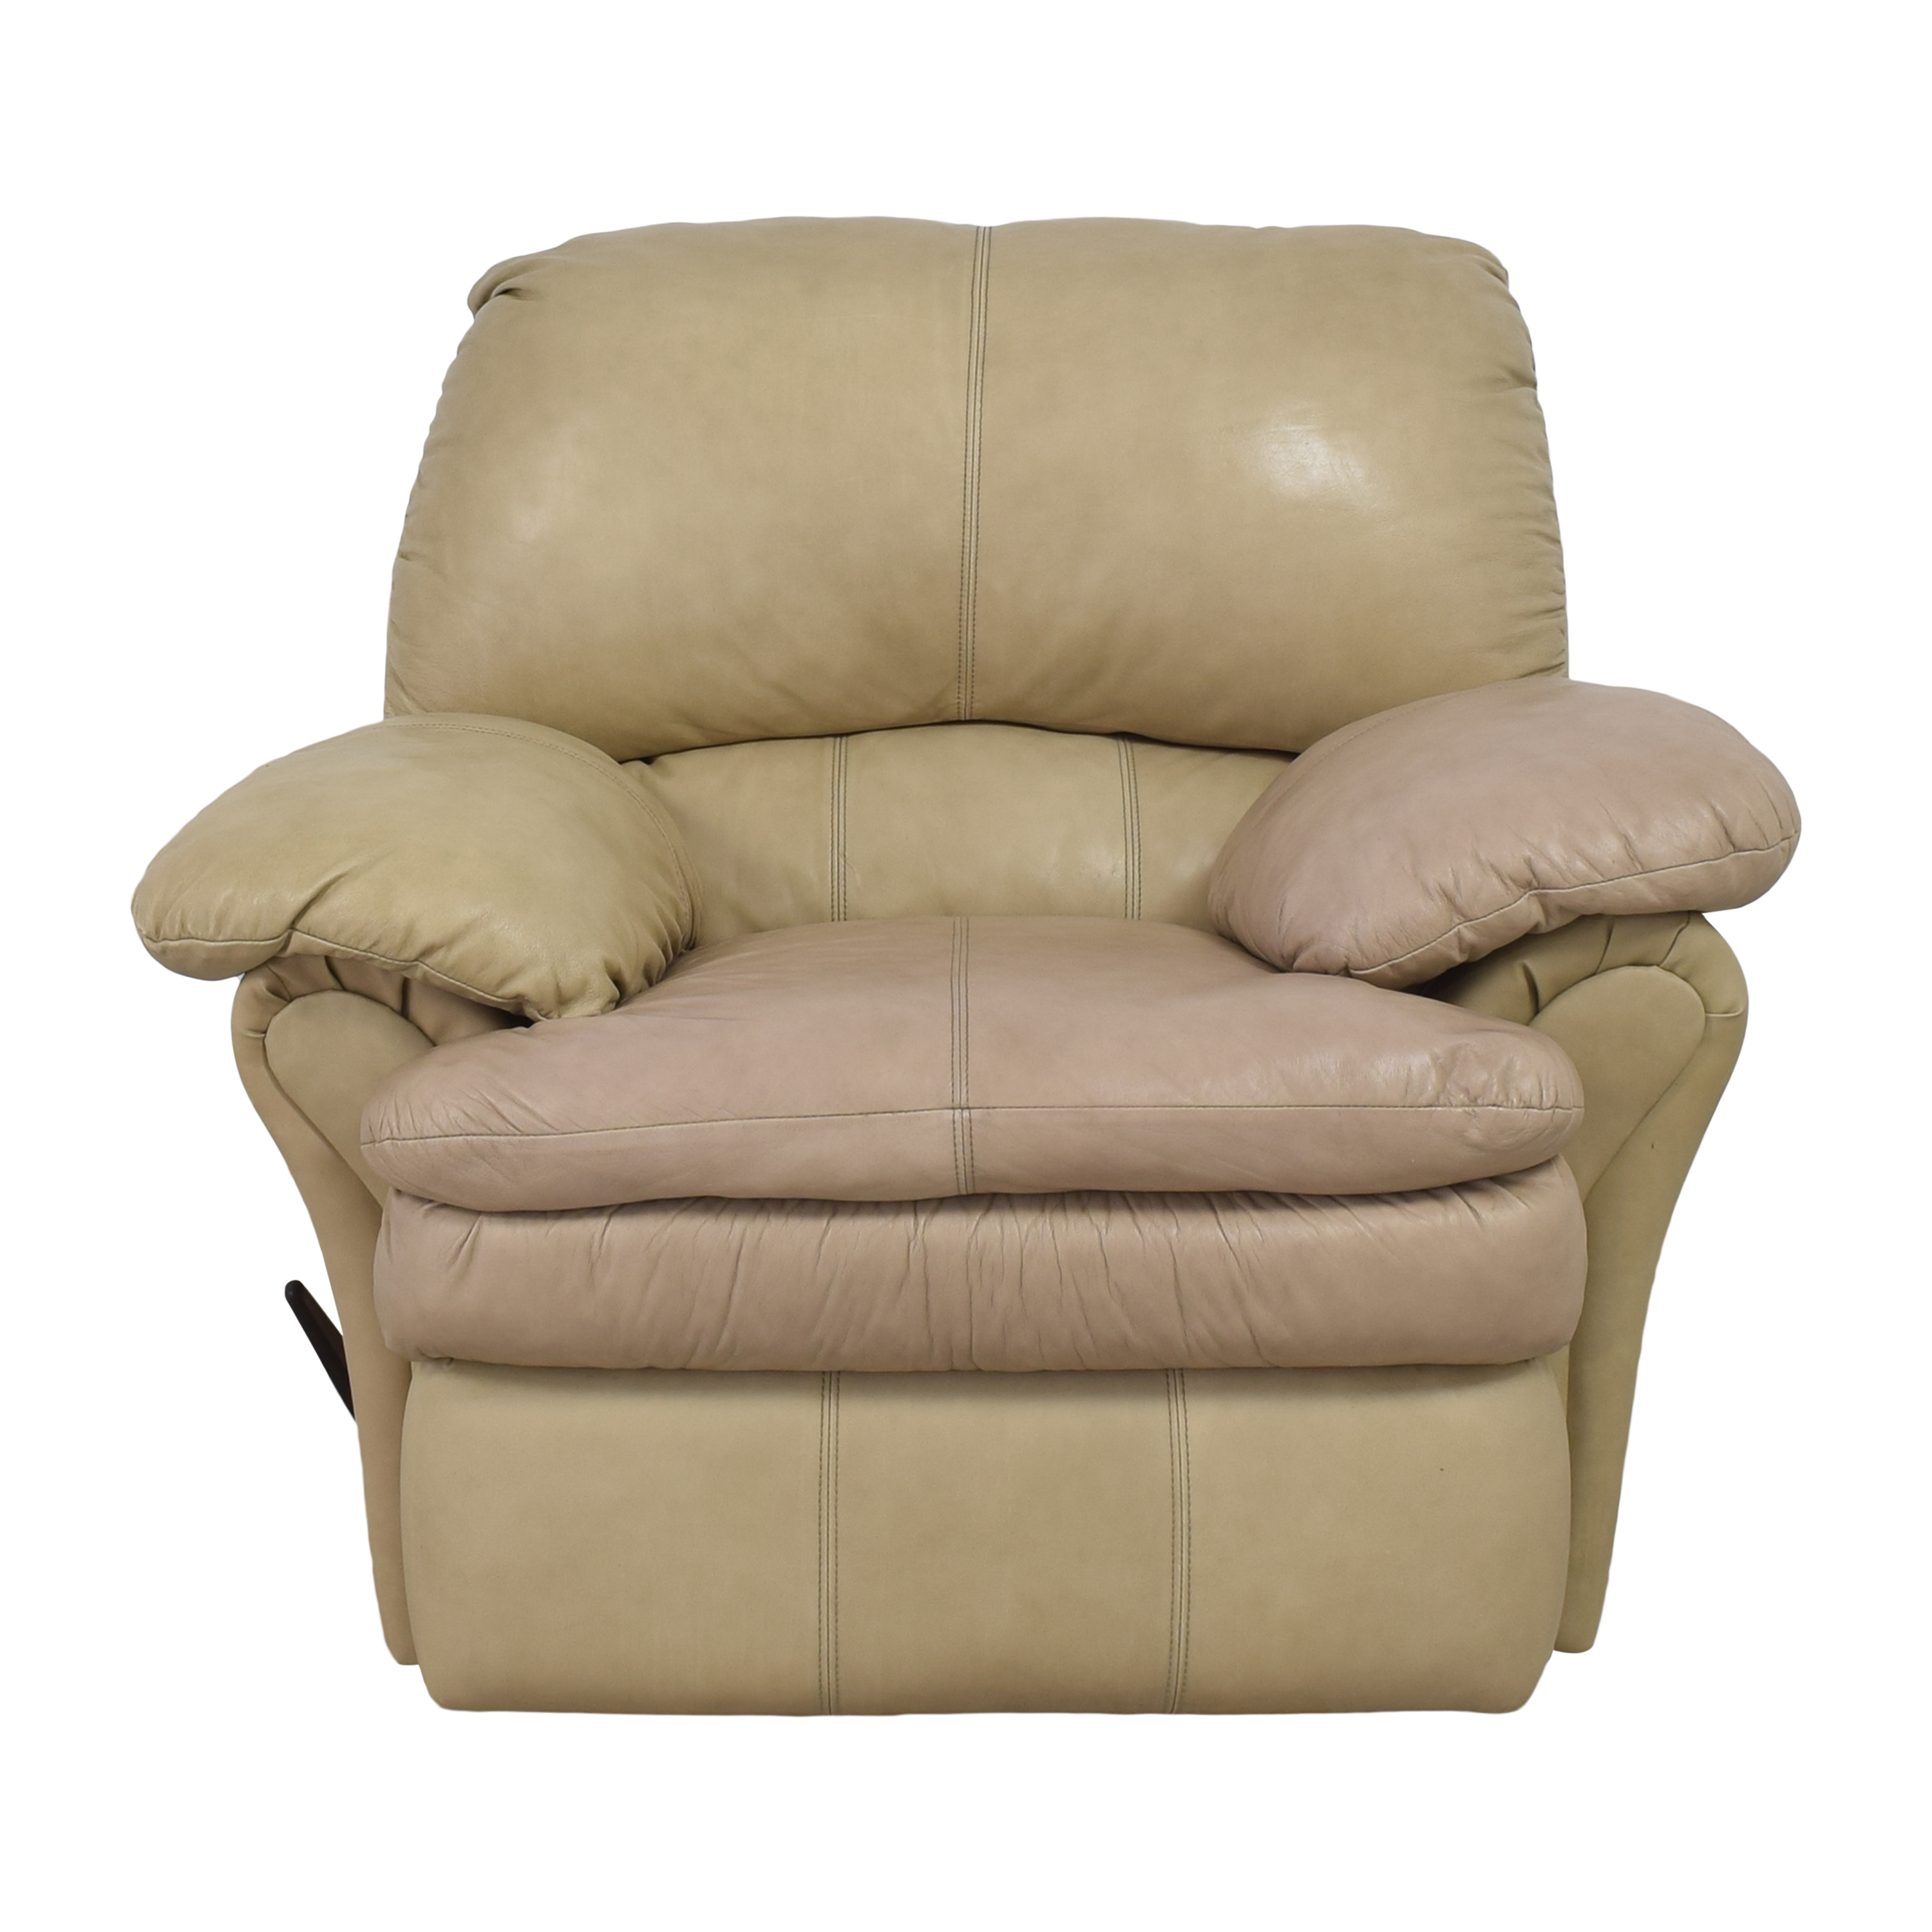 Recliner Accent Chair pa